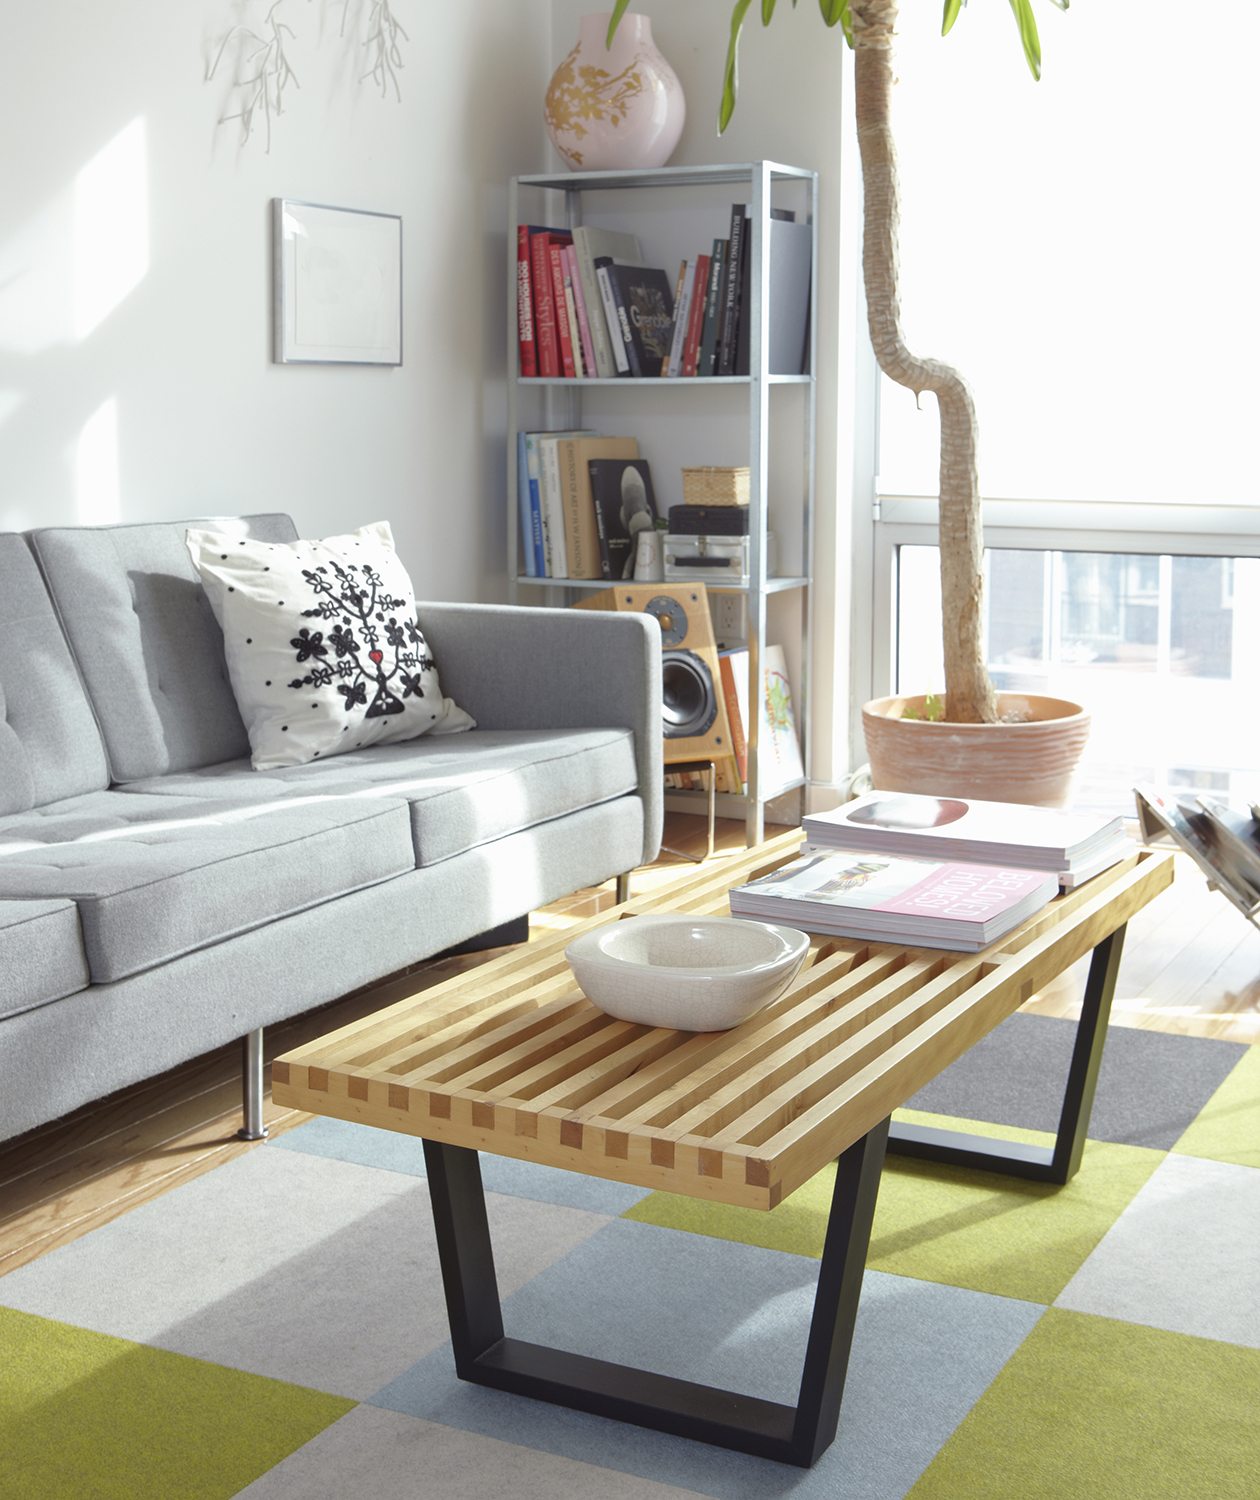 Modern loft apartment with wooden coffee table and large houseplant